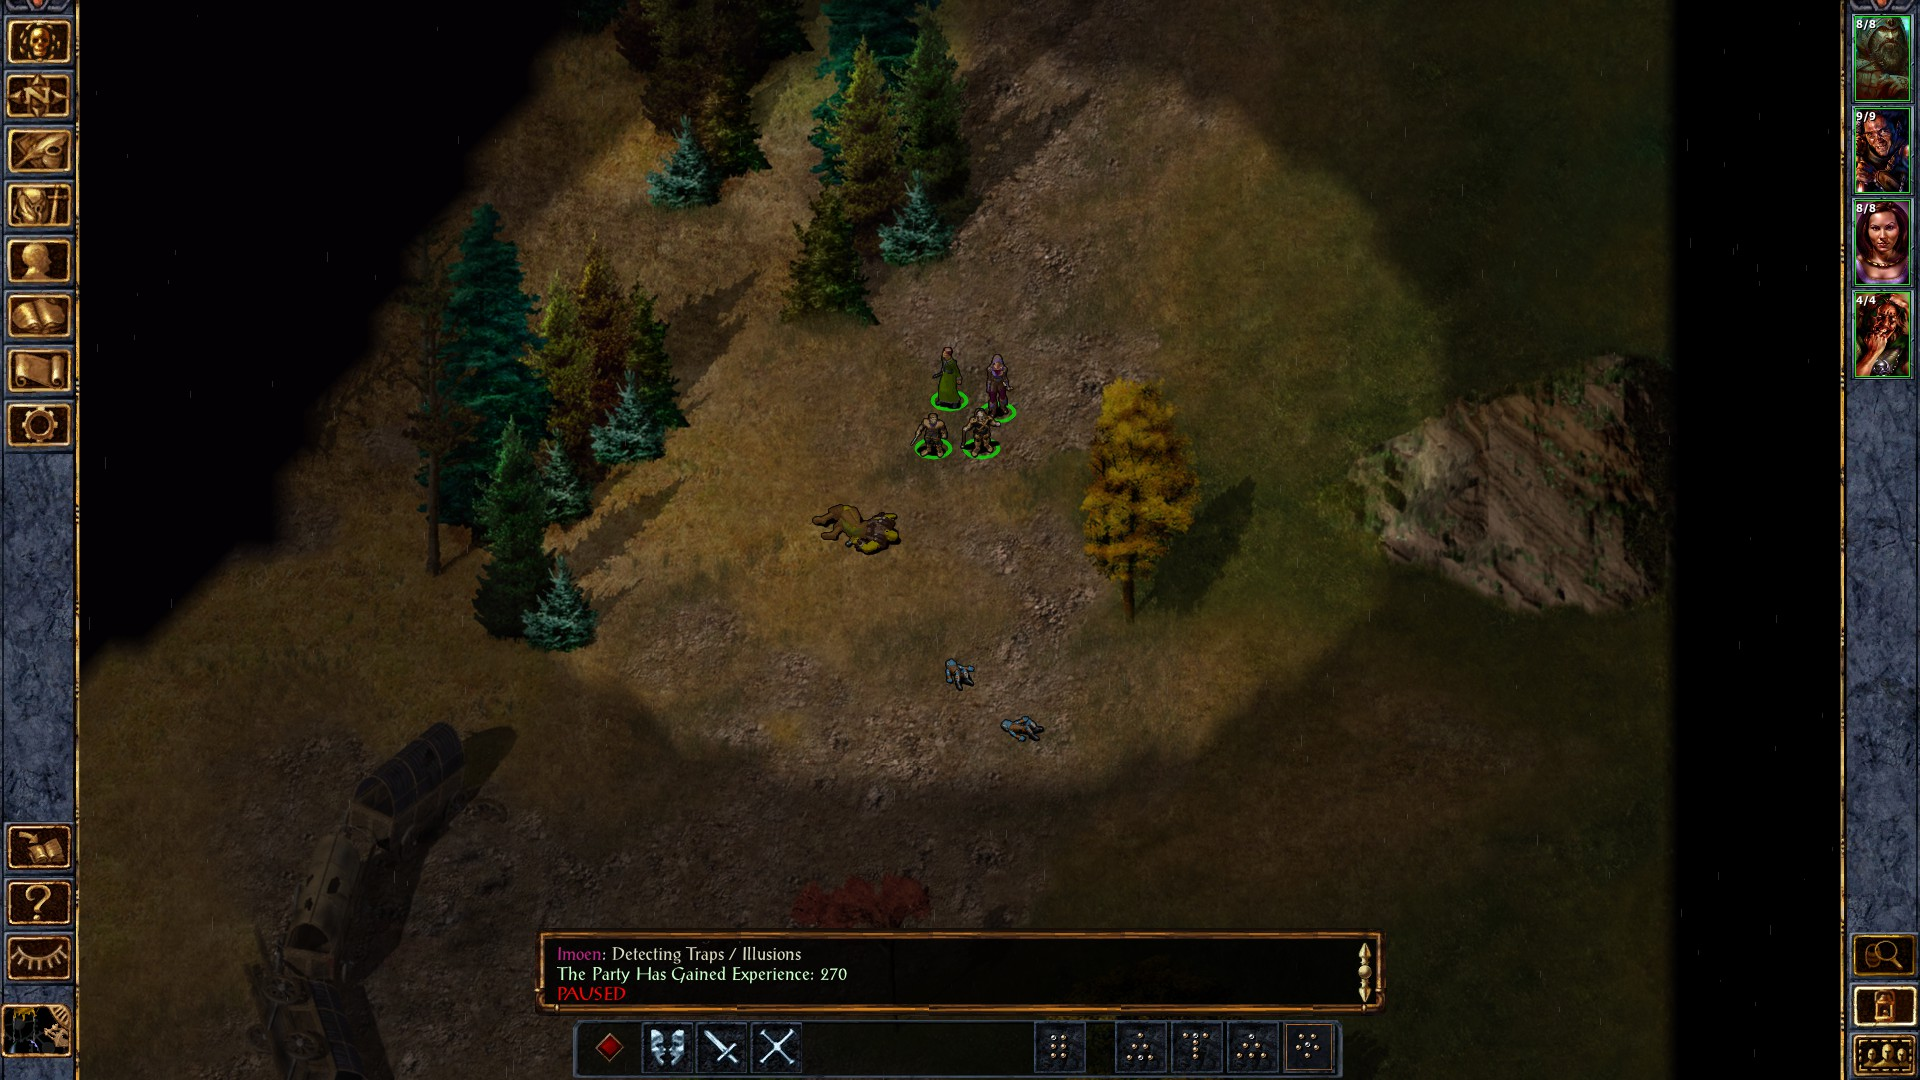 Thank you all for helping me get started on Baldur's Gate